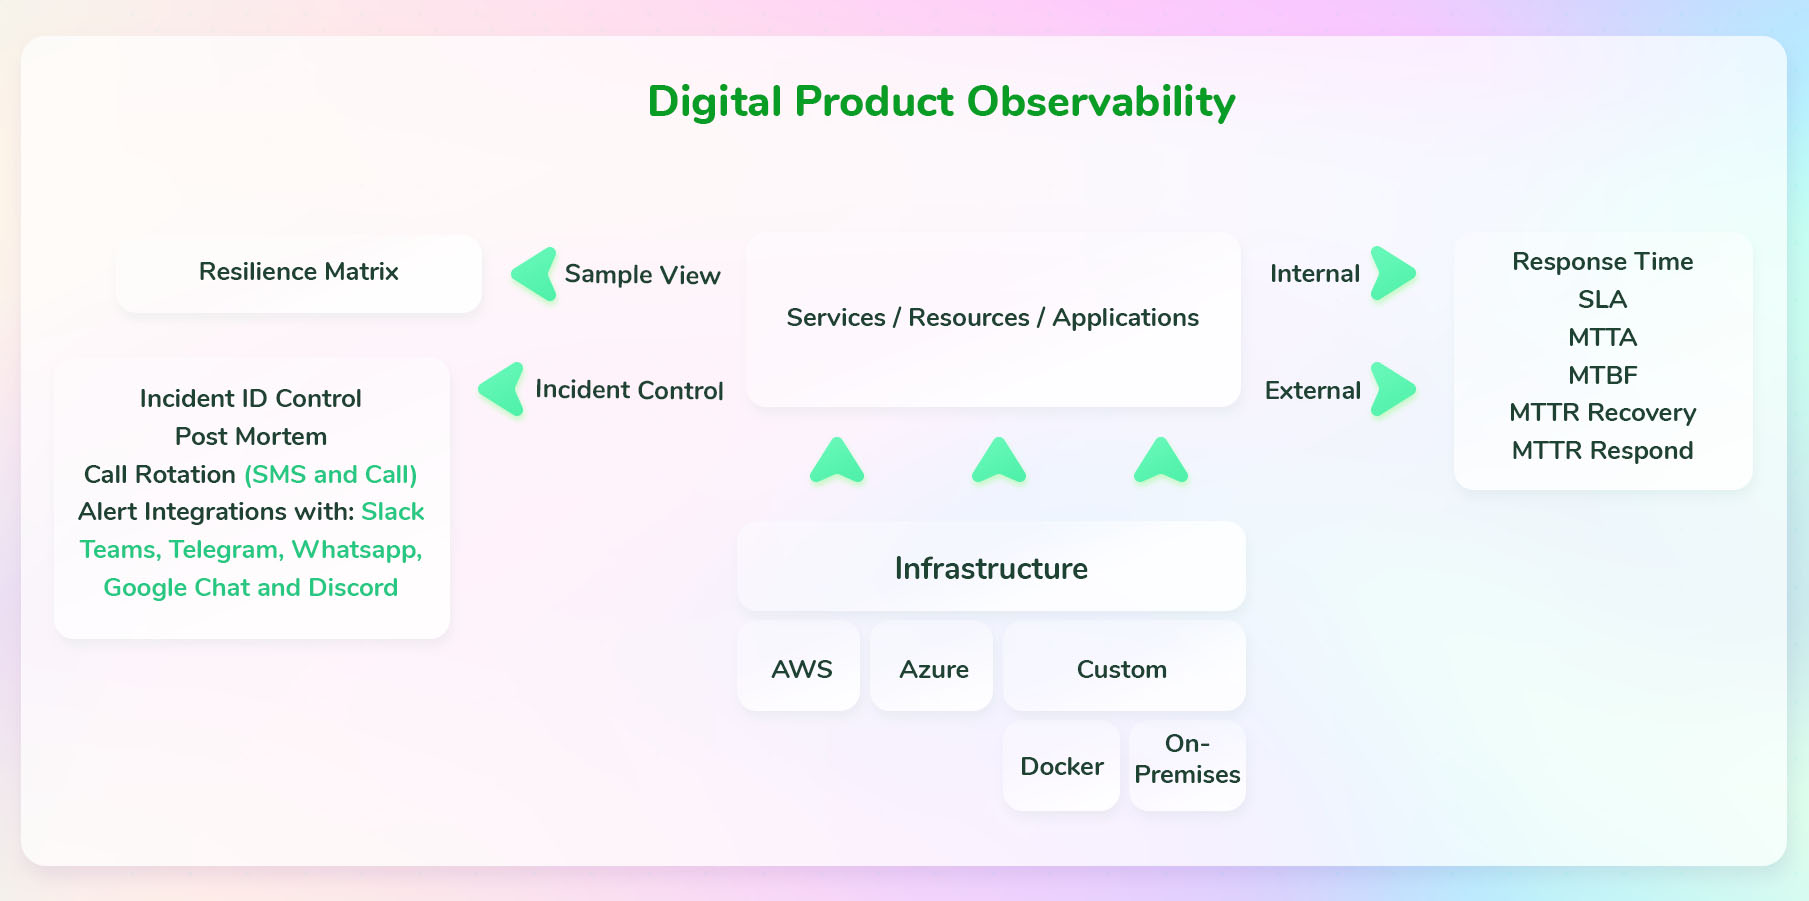 All-in-one Observability solution